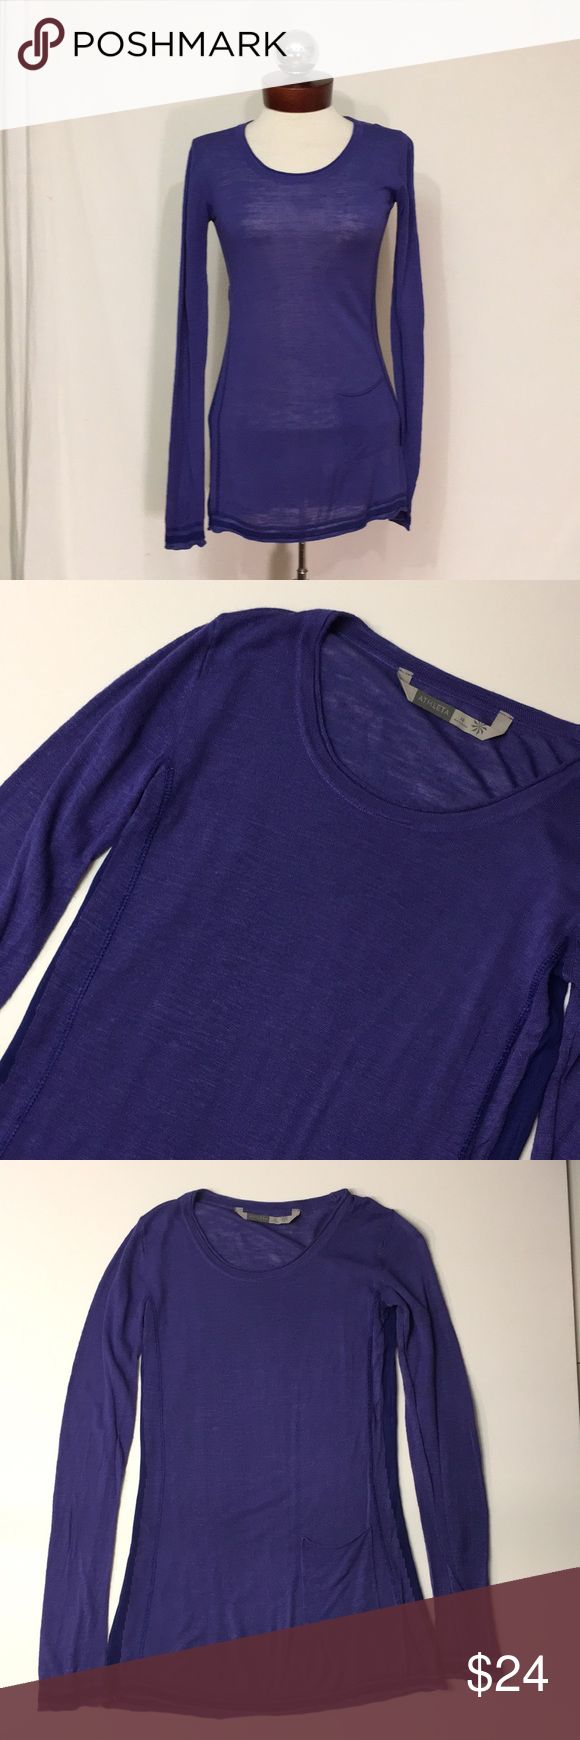 ATHLETA sheer crew neck sweater Excellent condition!  Color is a lighter purple than photos suggest.  Sheer and will require appropriate undergarments. .contrast panels at side and lower sleeves.   Viscose, linen, Polymide, silk .   Pocket at hip.   bust 32 length 28 Athleta Sweaters Crew & Scoop Necks